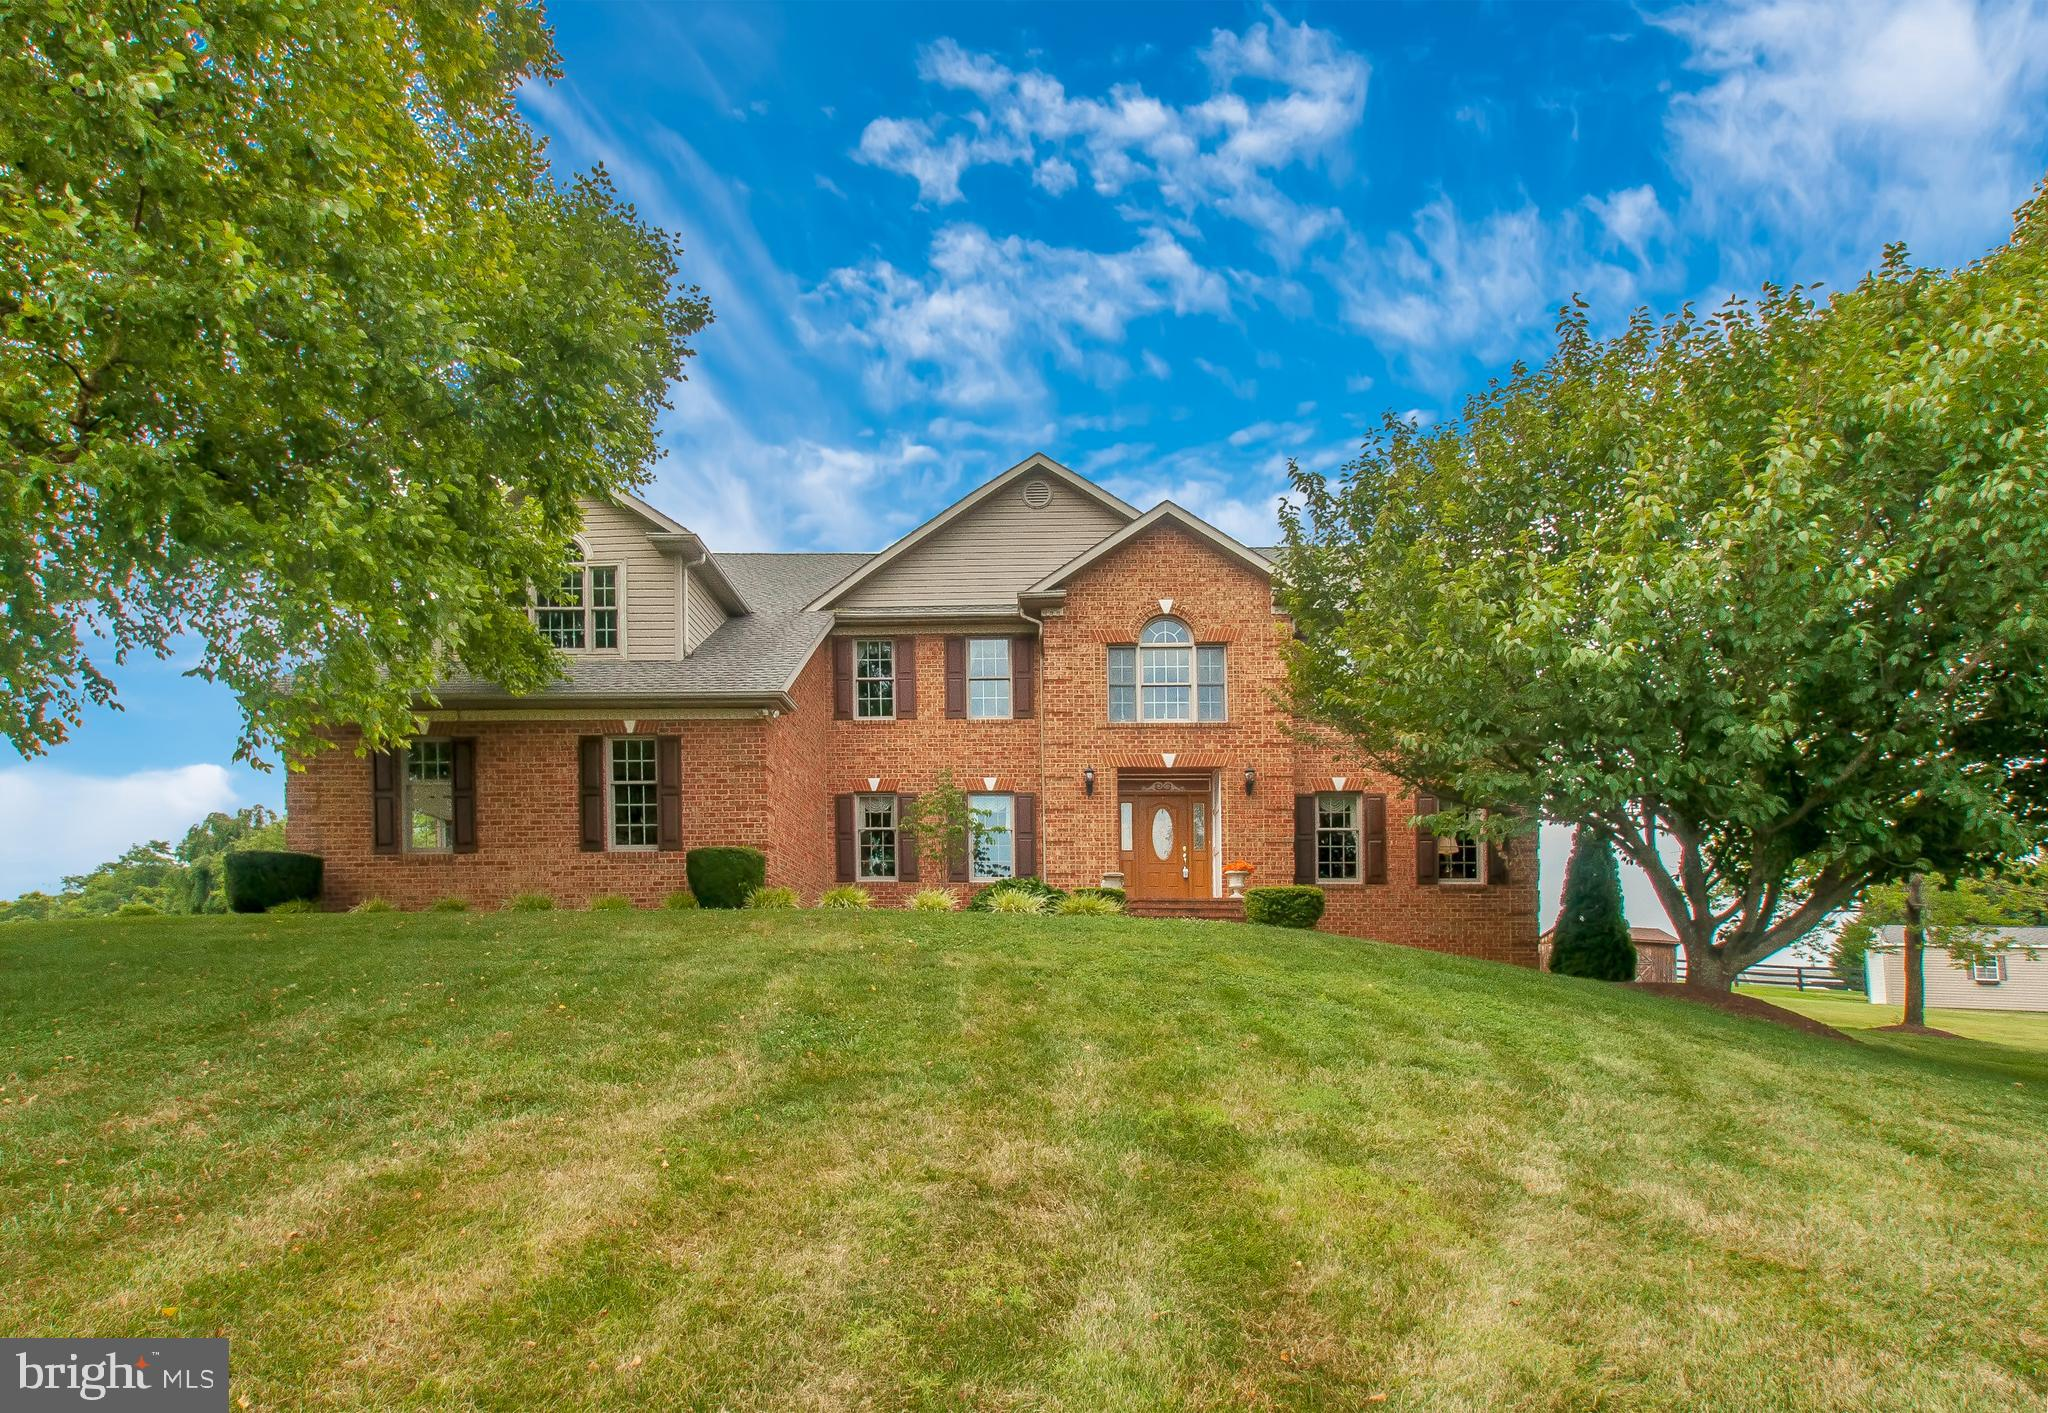 5336 HOLLOW TREE LANE, KEEDYSVILLE, MD 21756